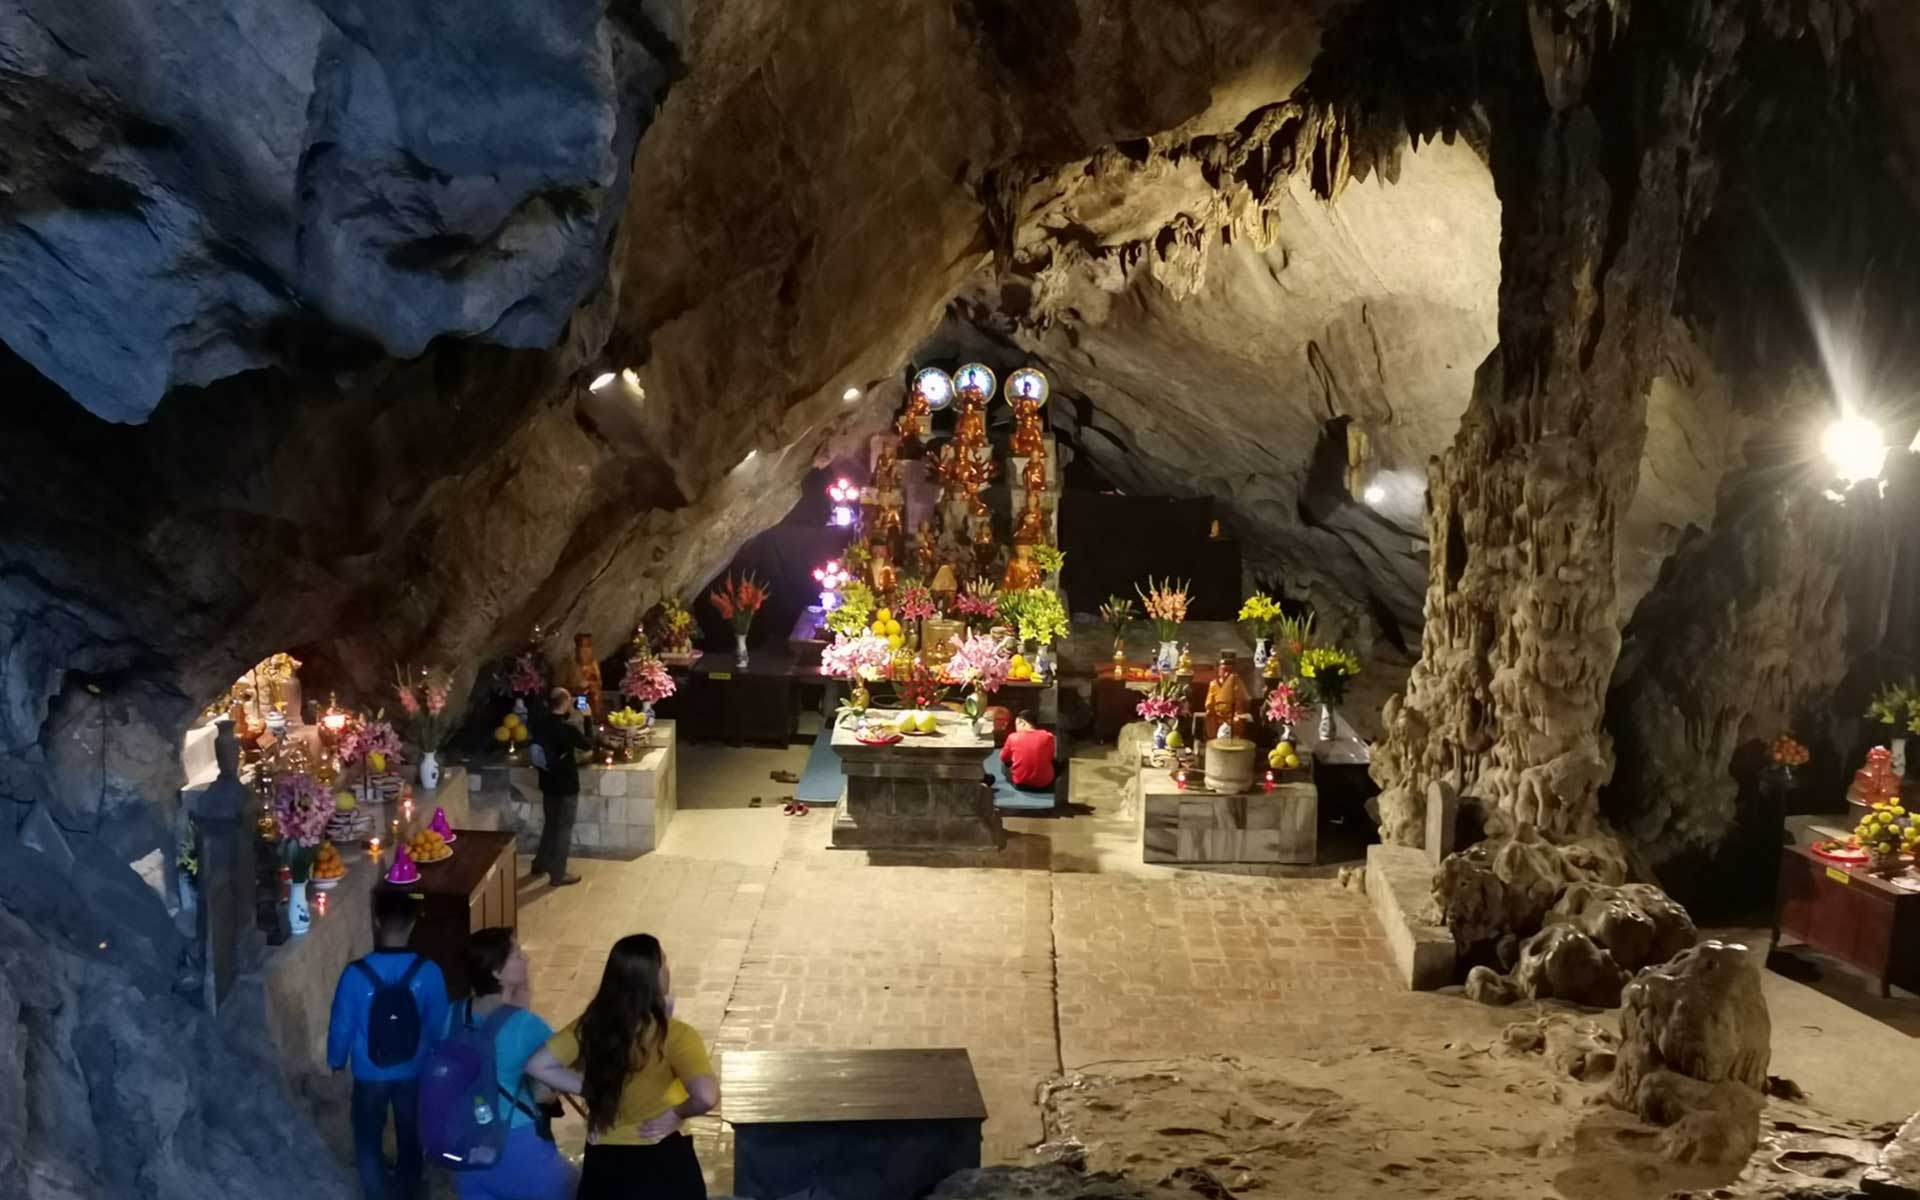 There are many natural stalactites and stalagmites inside Huong Tich Grotto.